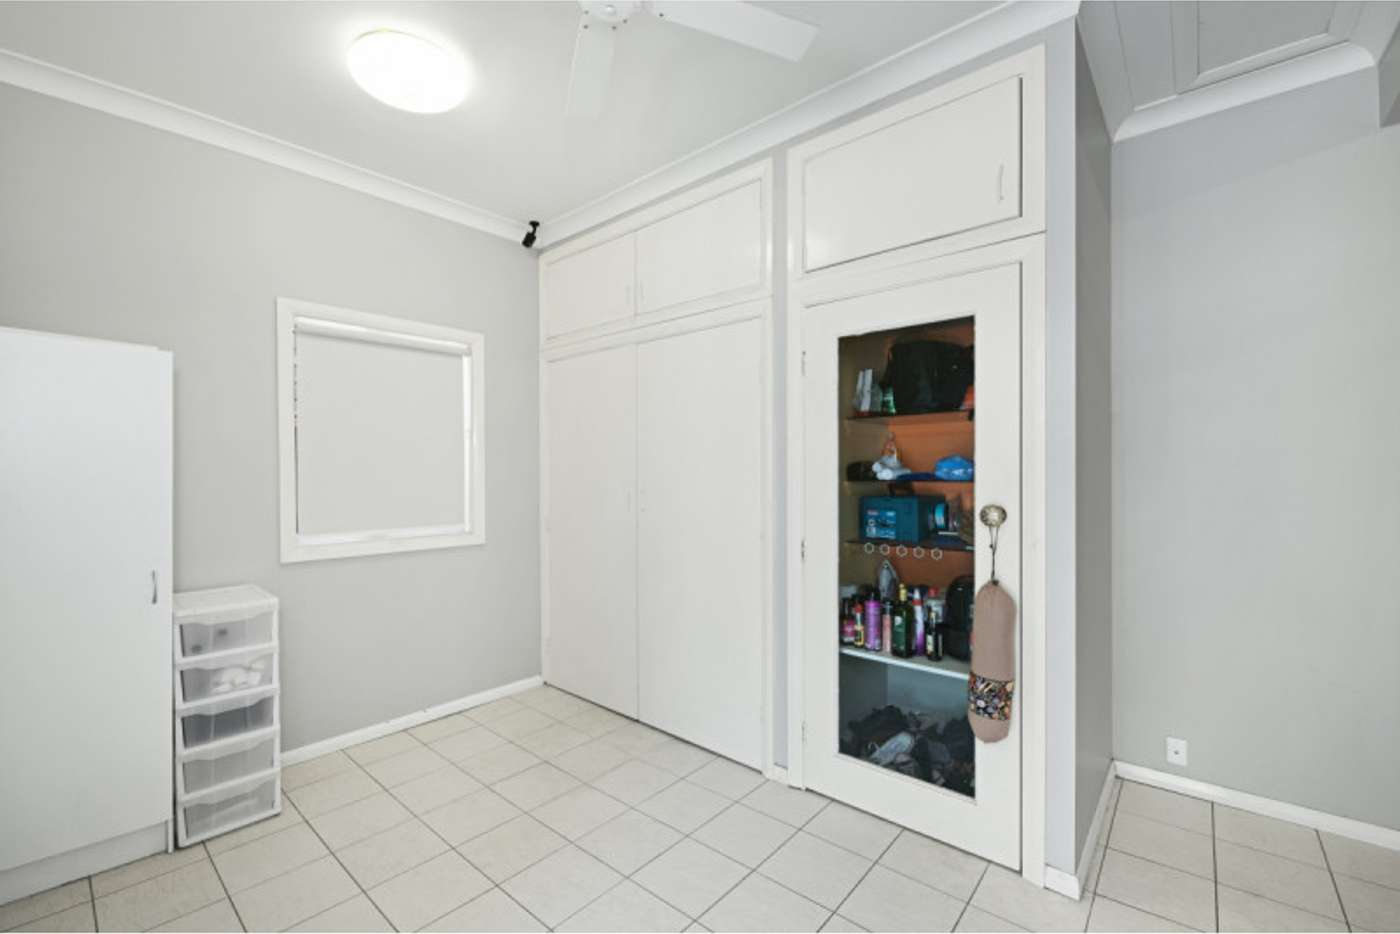 Fifth view of Homely house listing, 38 George Street, Belmont NSW 2280